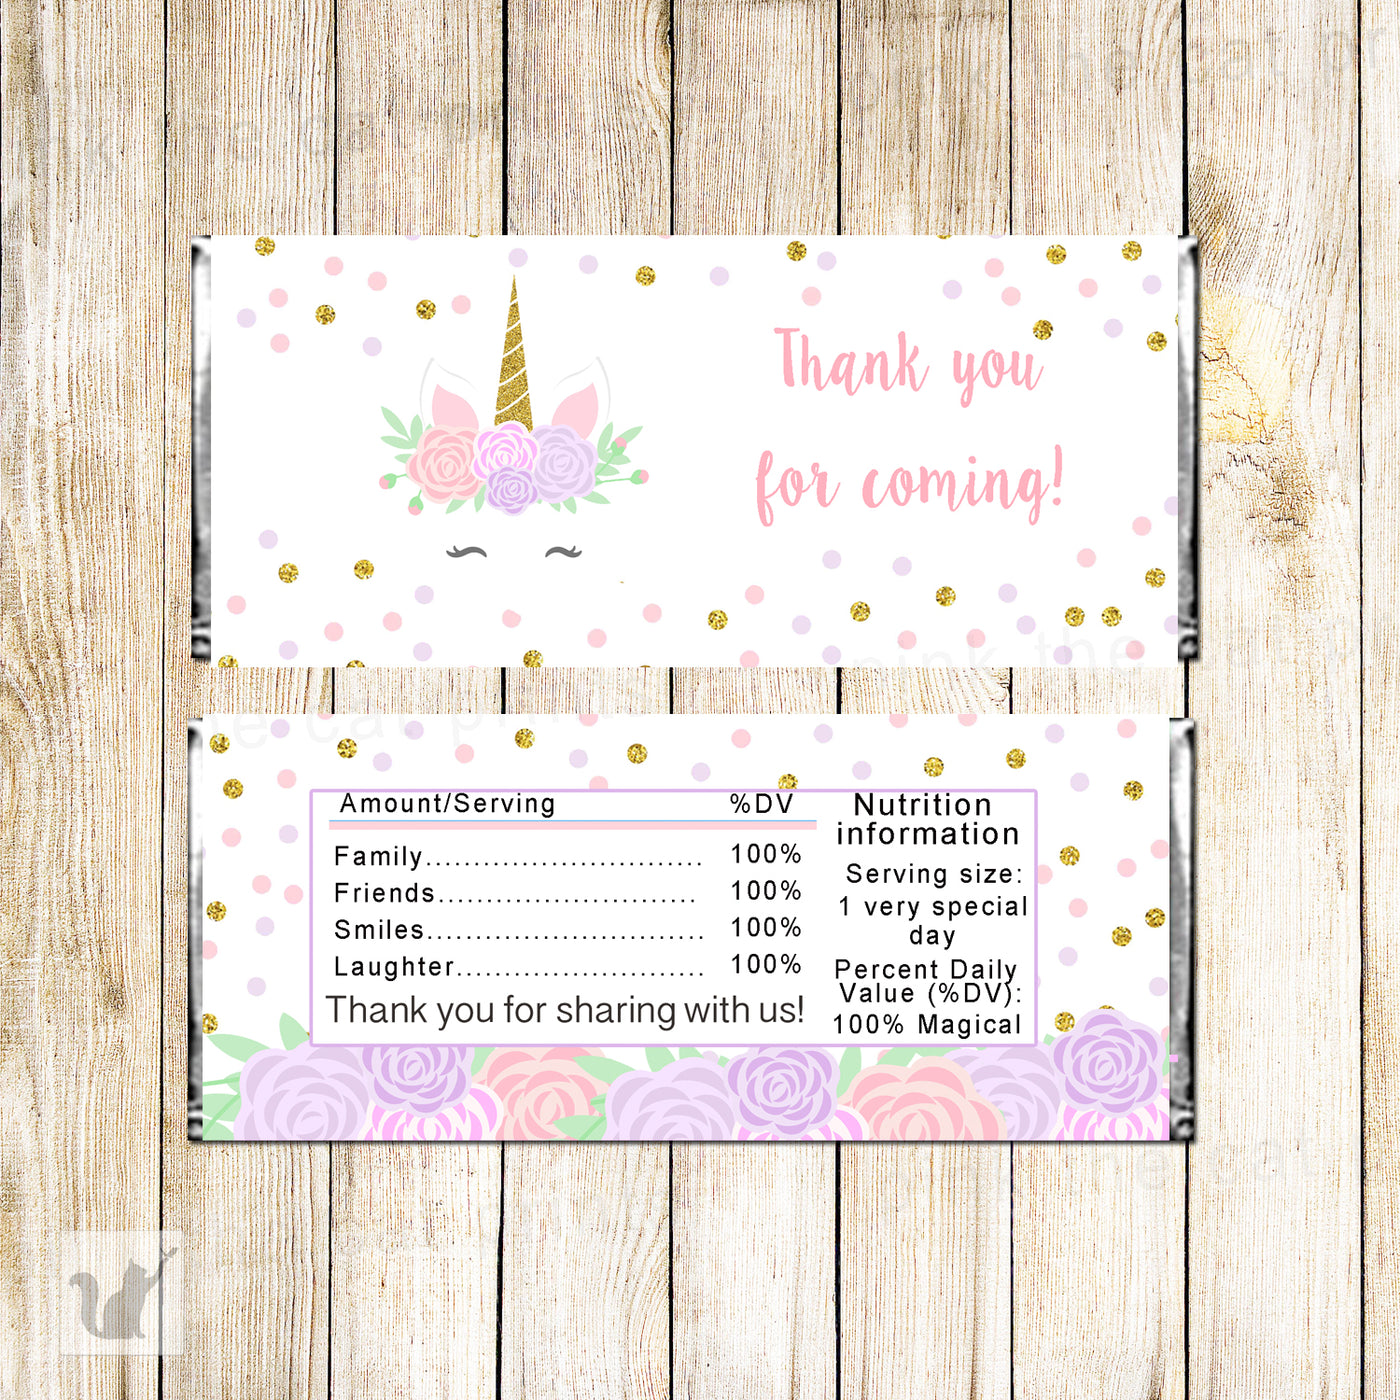 graphic about Free Printable Baby Shower Candy Bar Wrappers named Unicorn Sweet Bar Wrapper Birthday Kid Shower Printable